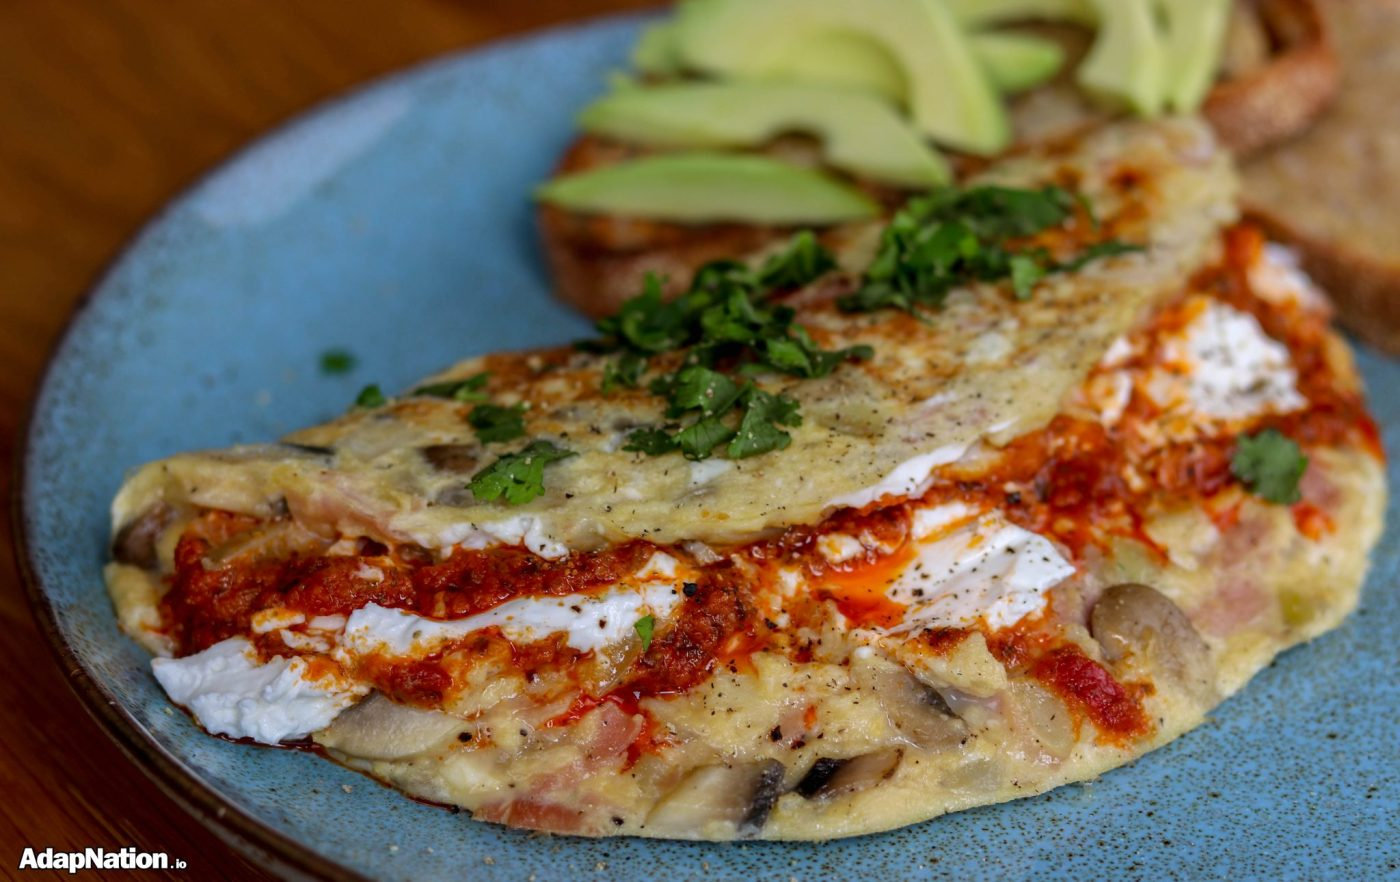 Goats Cheese & Red Pesto Omelette with Avocado Toast